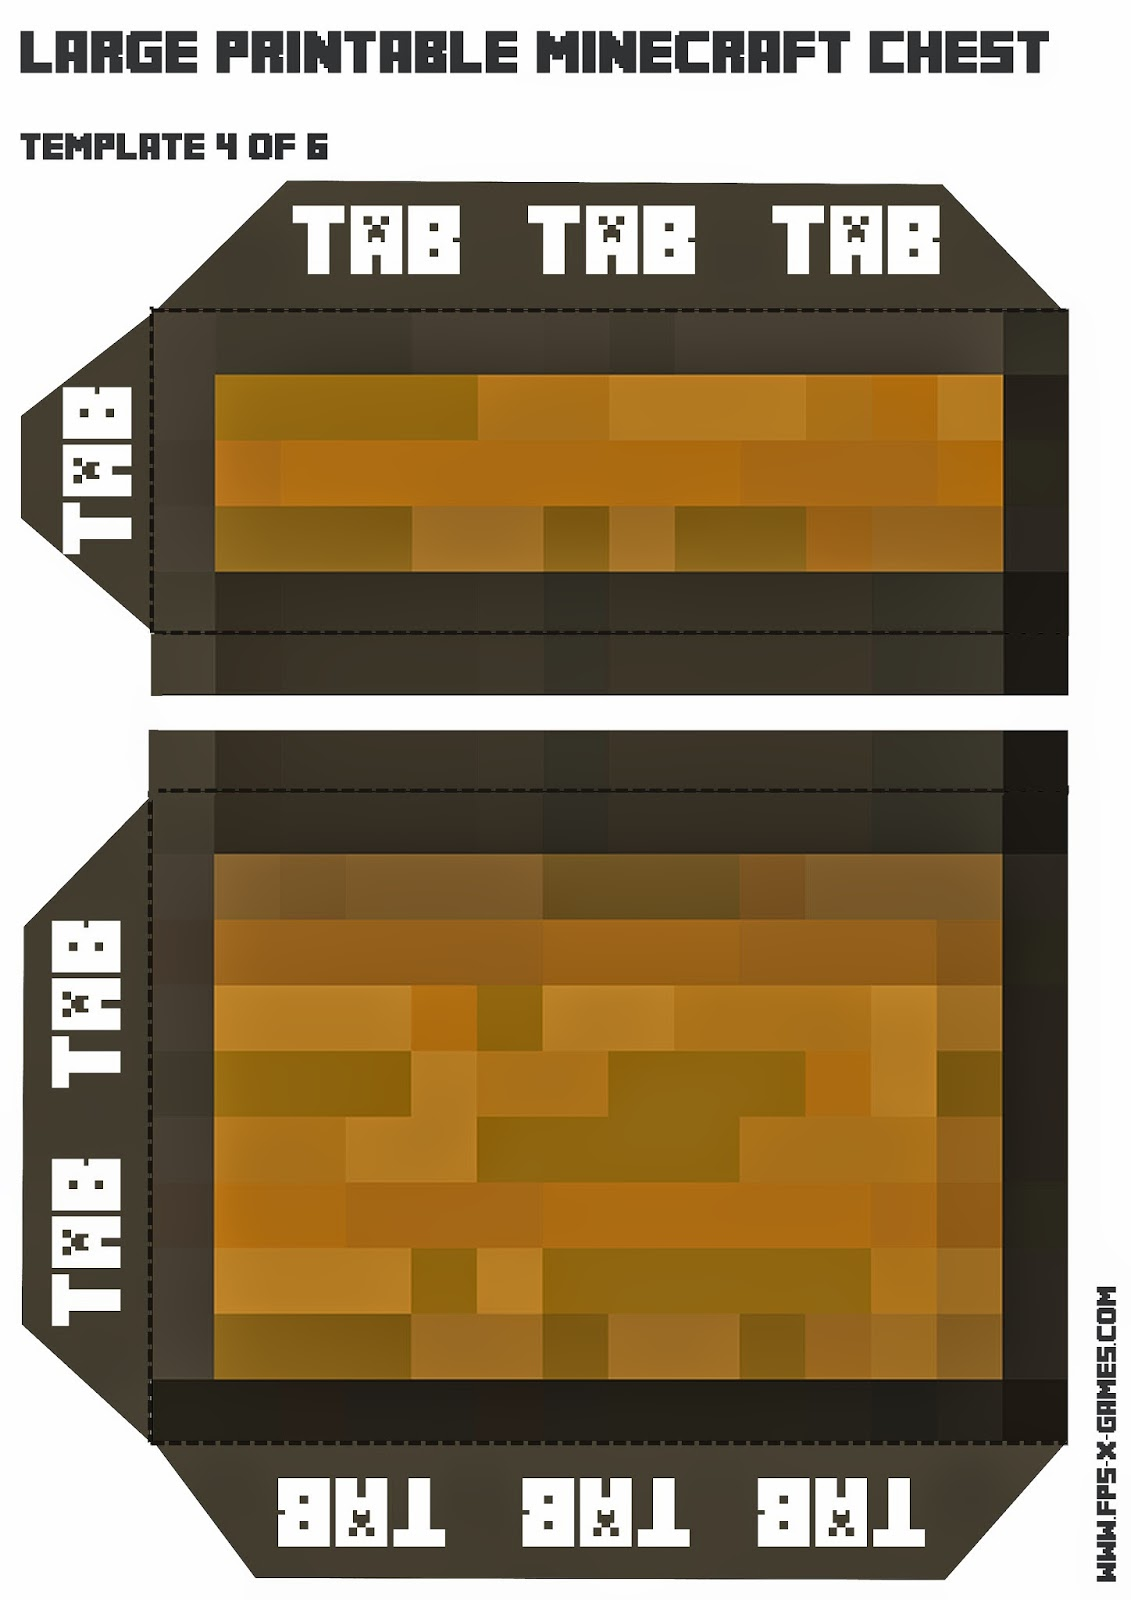 Free printable Minecraft chest, template 4 of 6